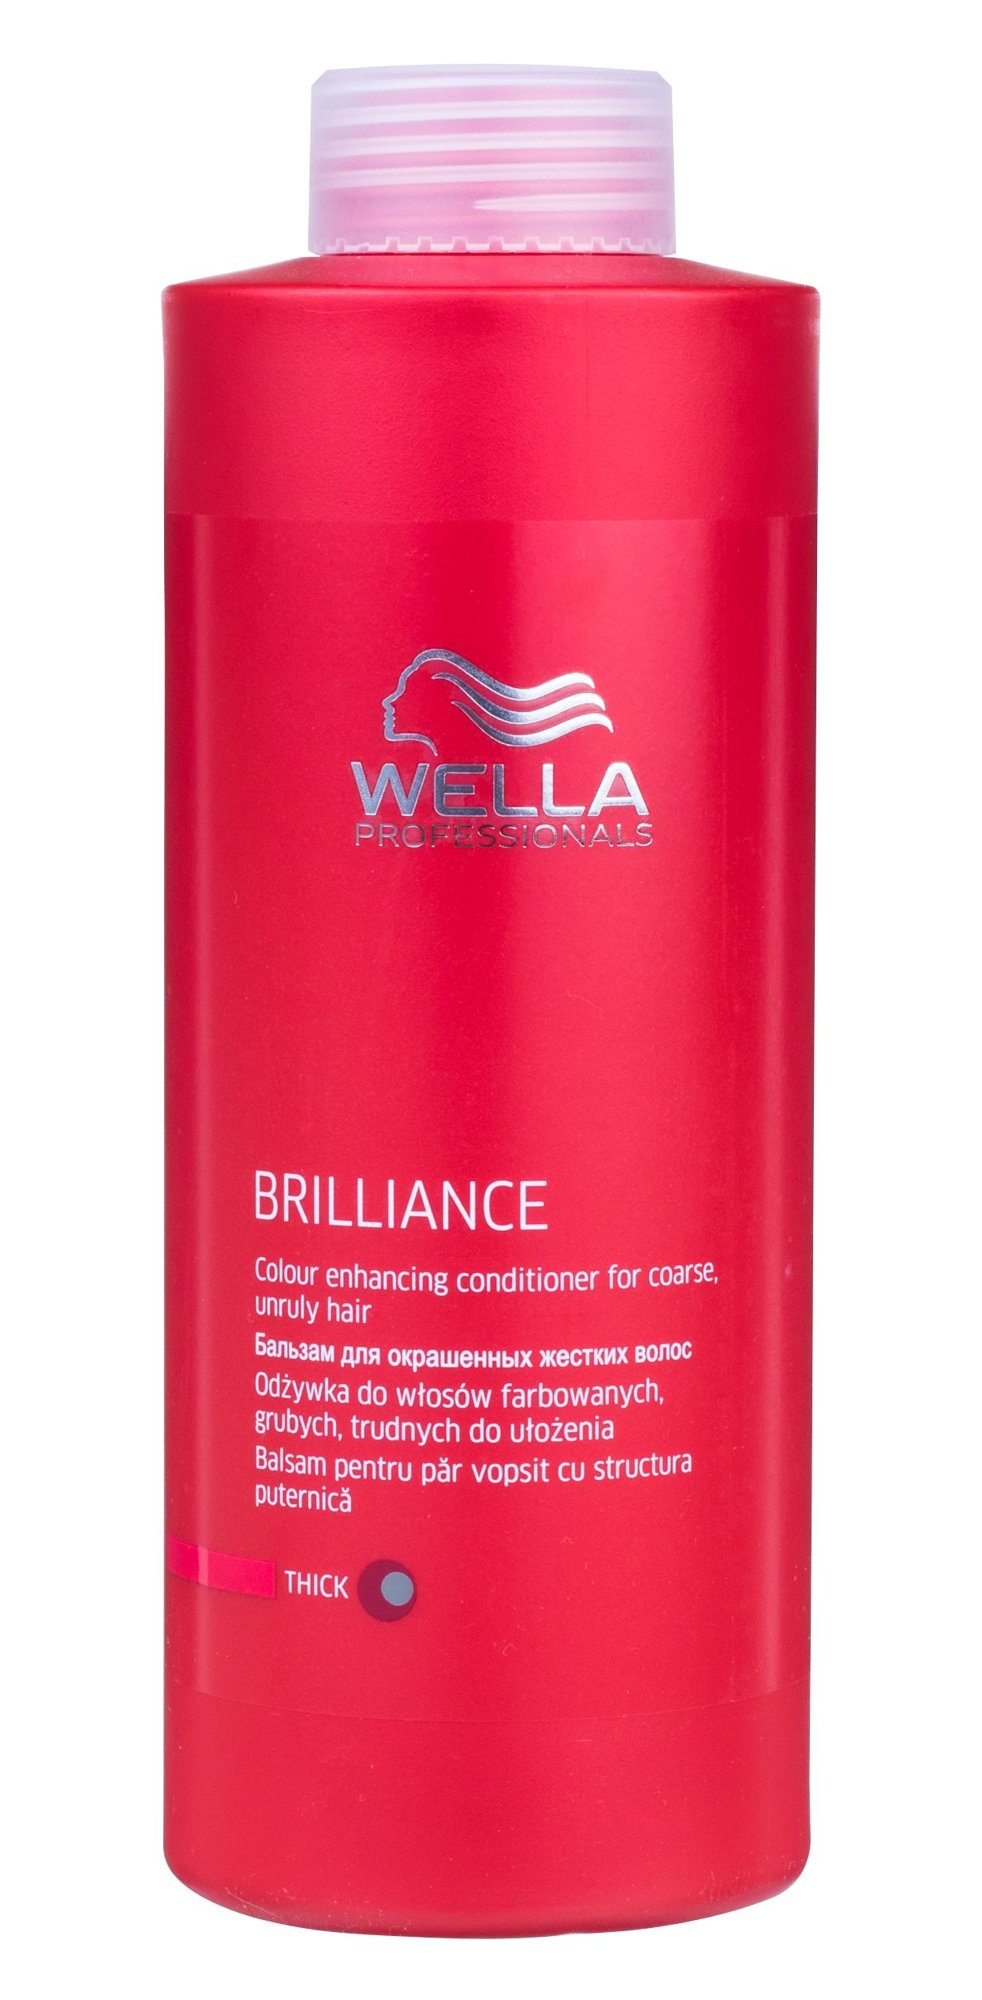 Wella Brilliance Cosmetic 1000ml